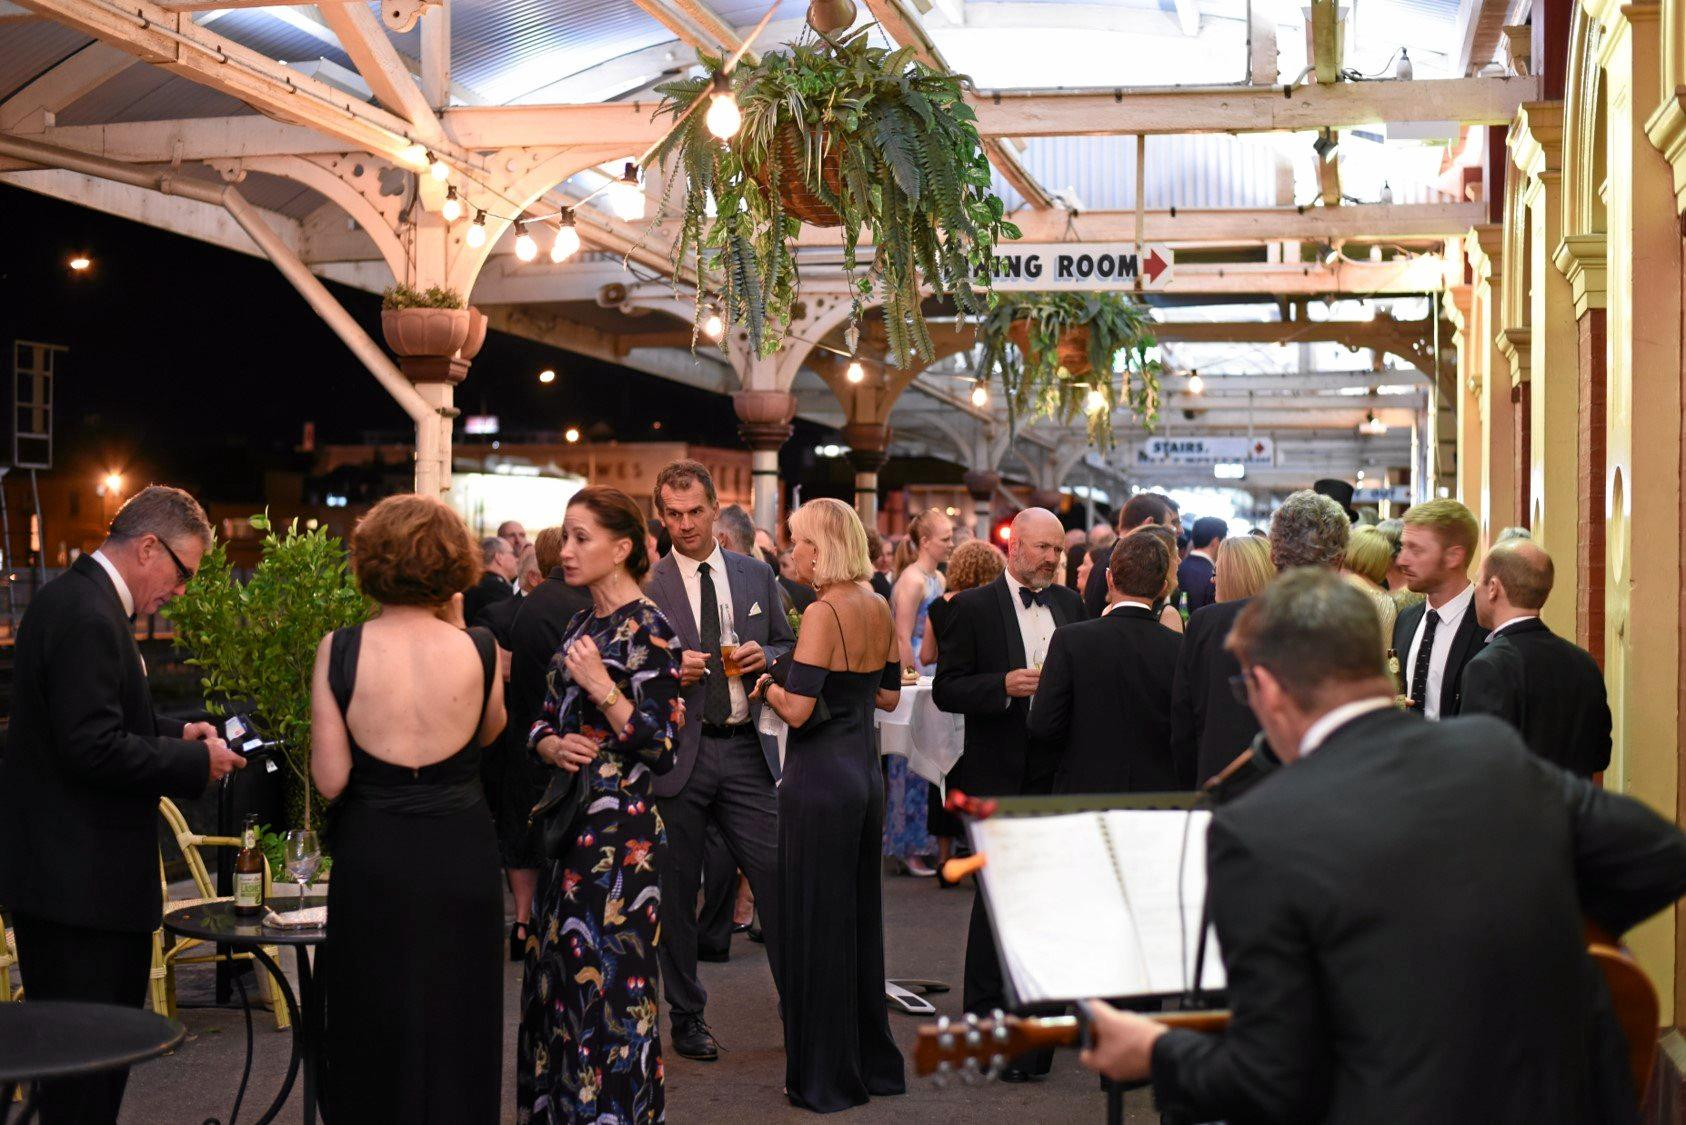 More than 100 people attended the sold out black tie event at Inbound Restaurant.